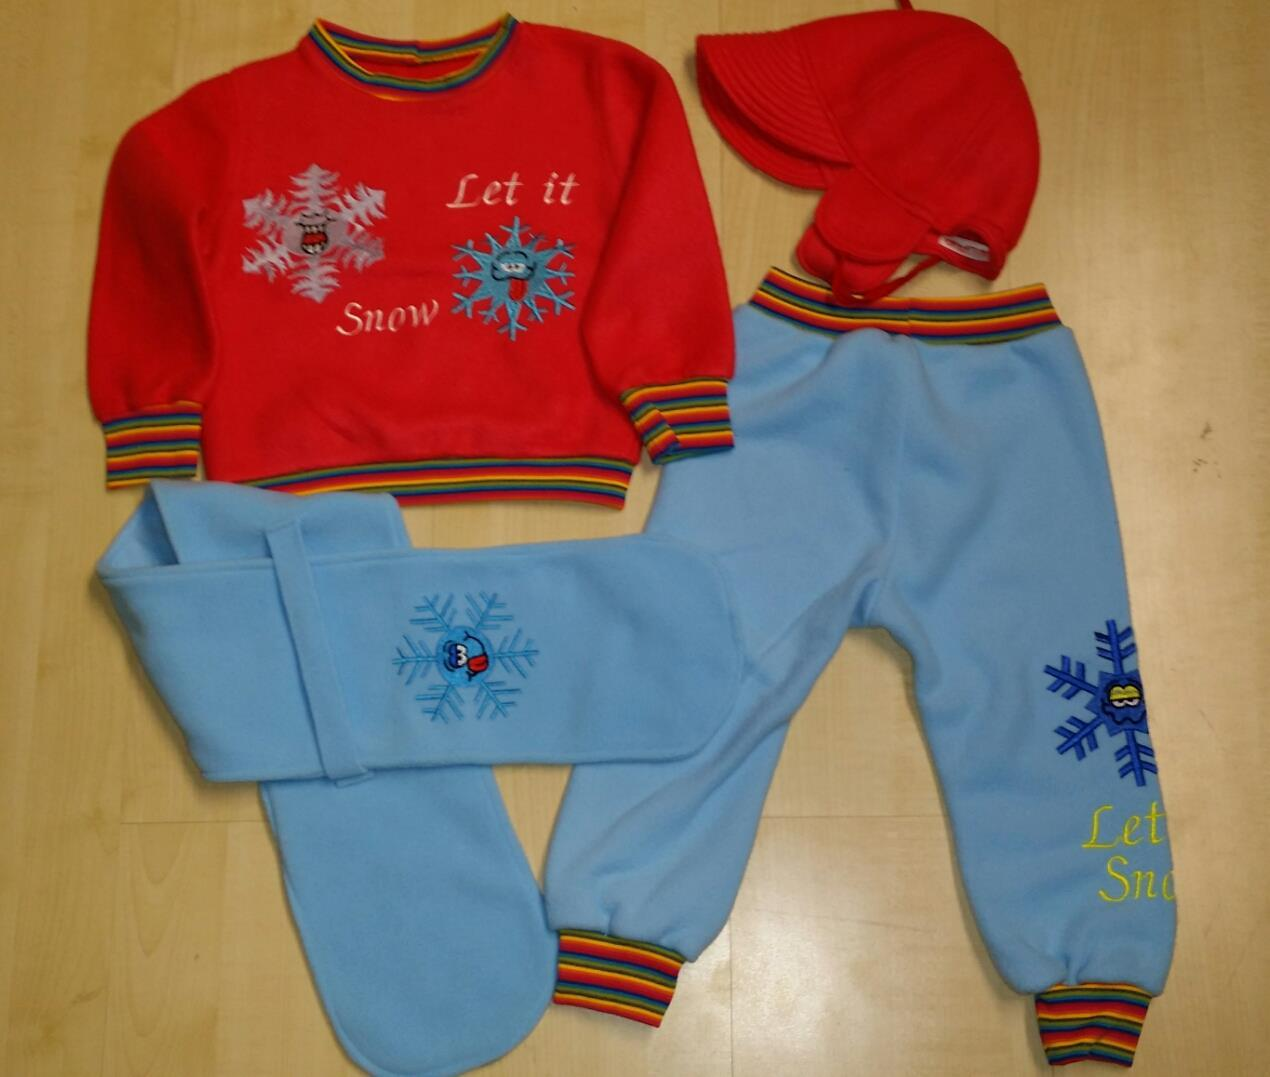 Winter warm clothes with Snowflake embroidery design